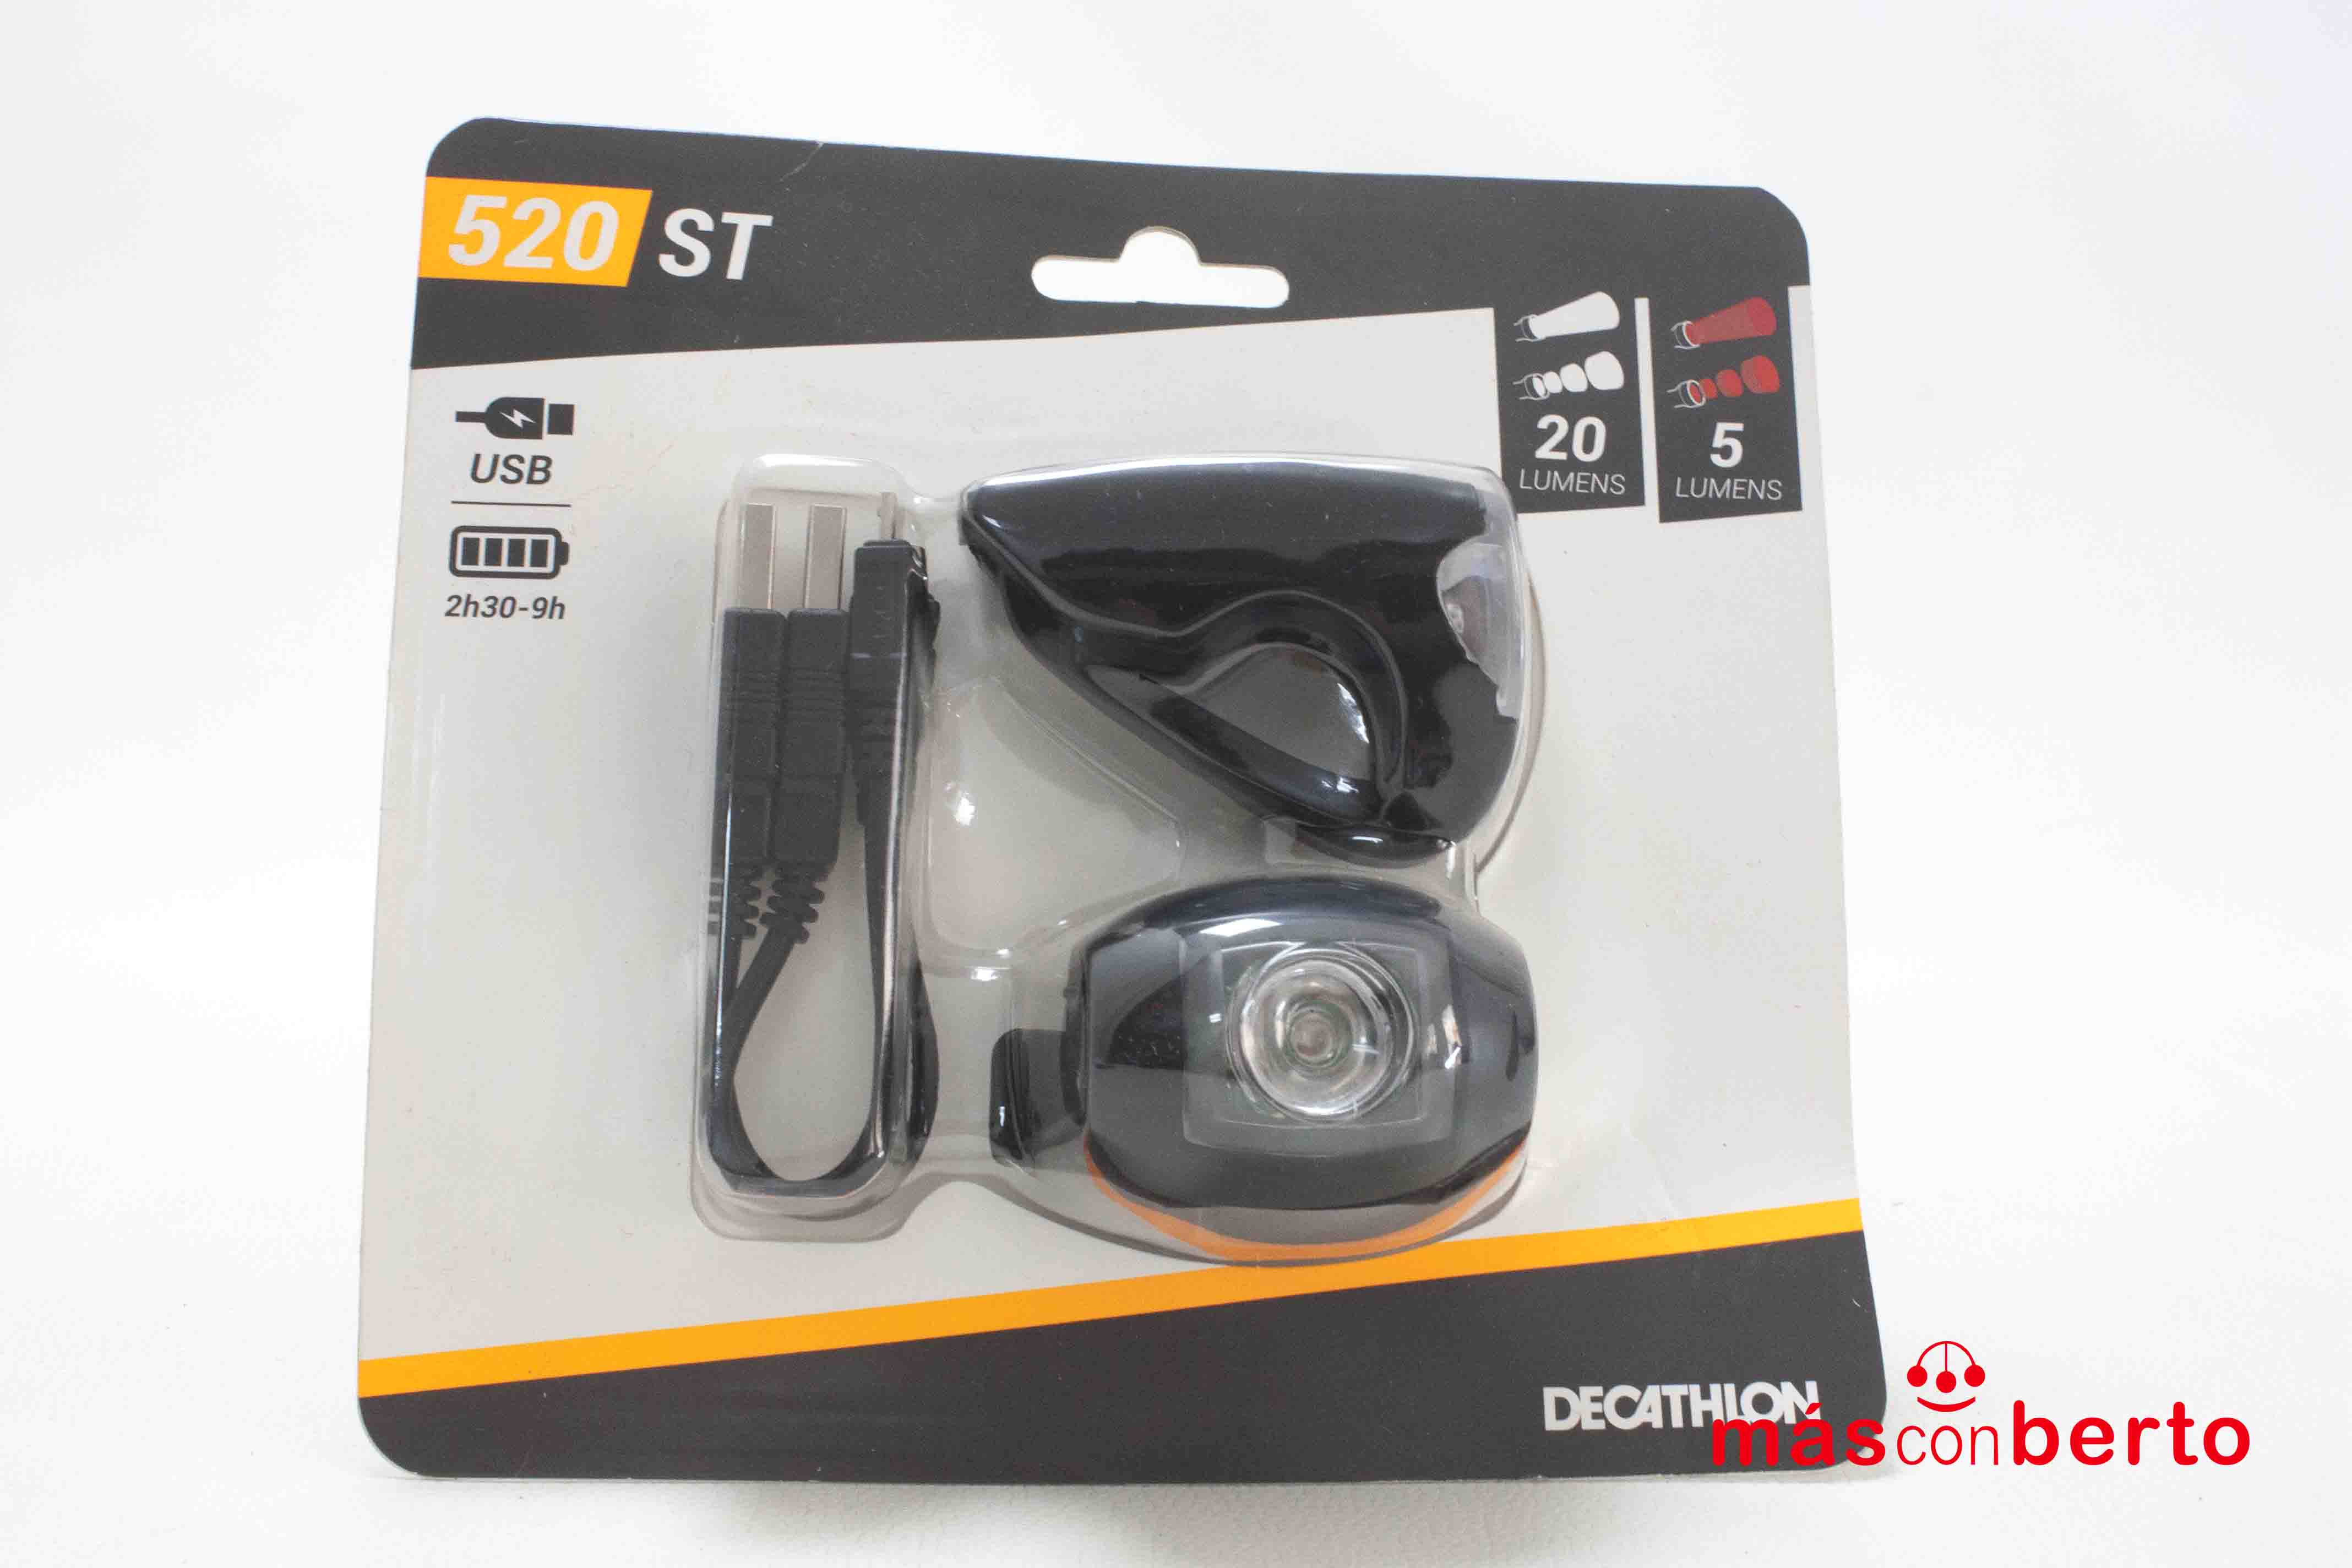 Kit luces bicicleta ST520